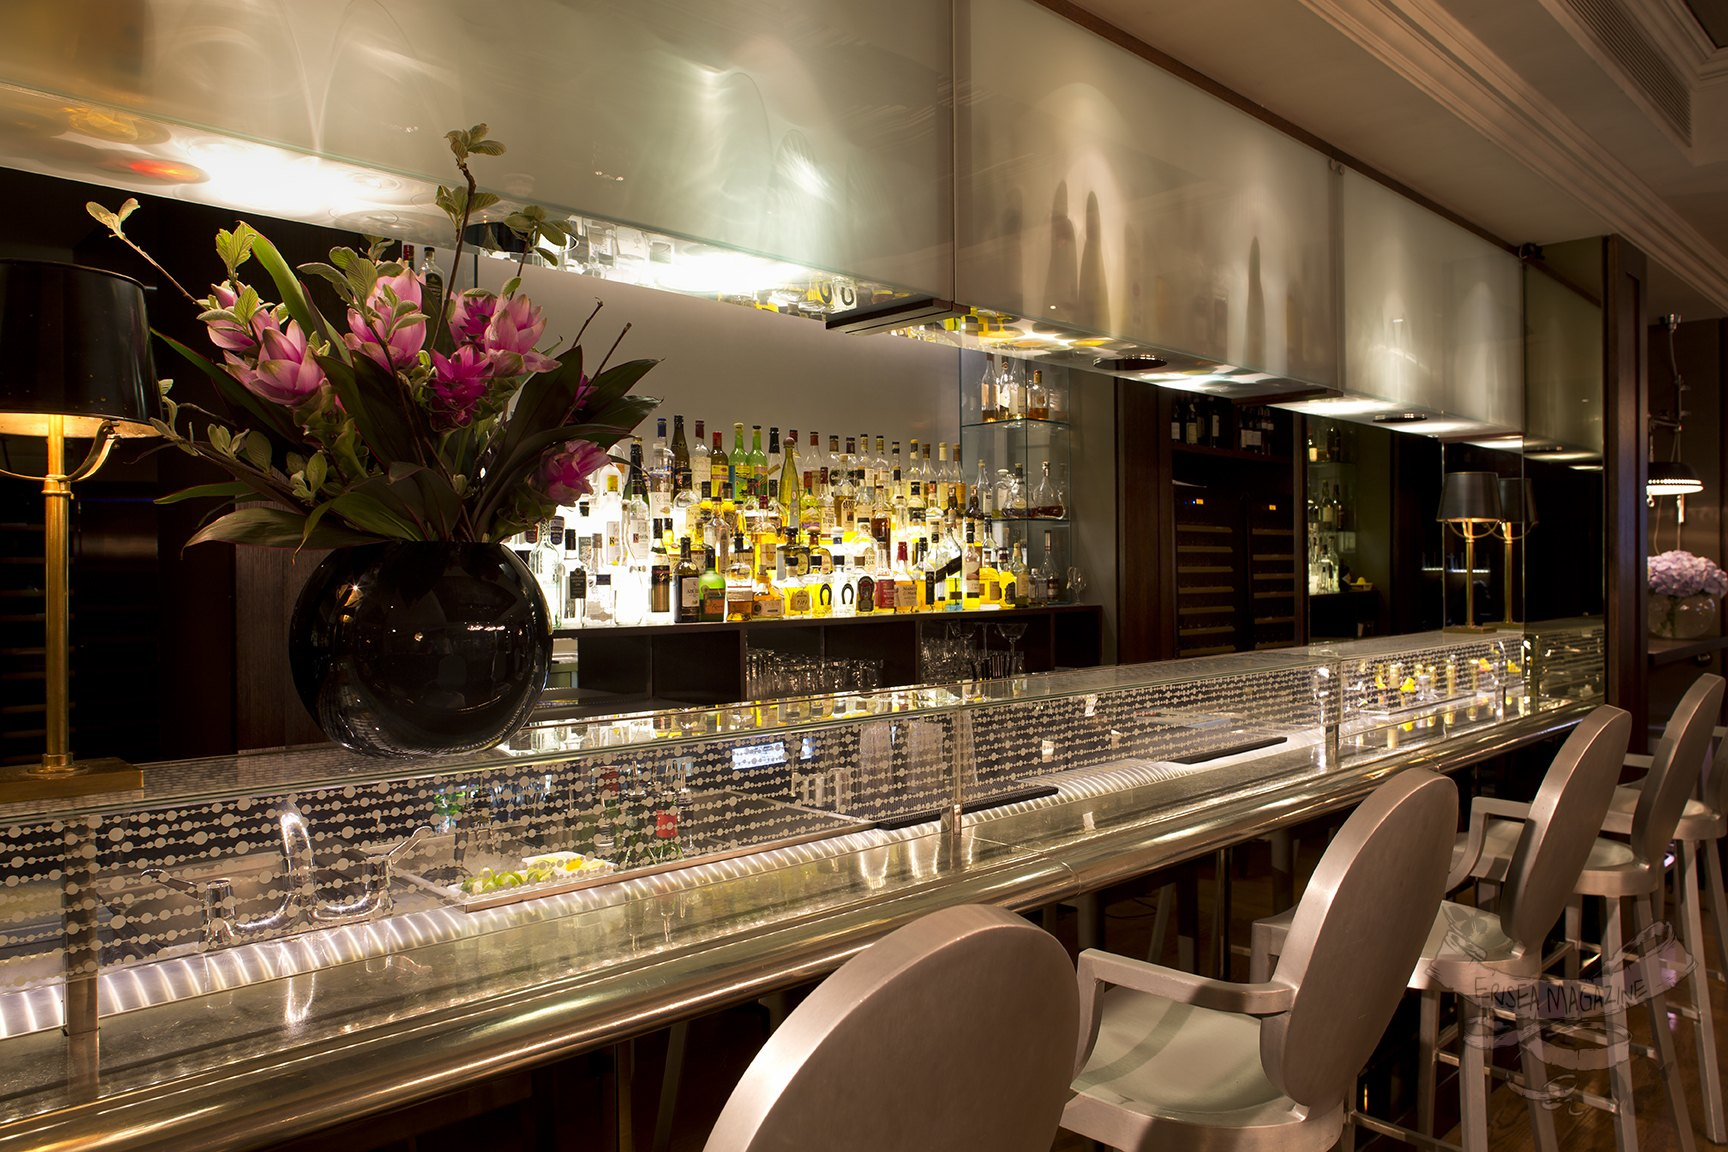 The-Bar-Closeup-The-Arch-London.-Photography-must-be-credited-to-The-Arch-London-Copy.jpg